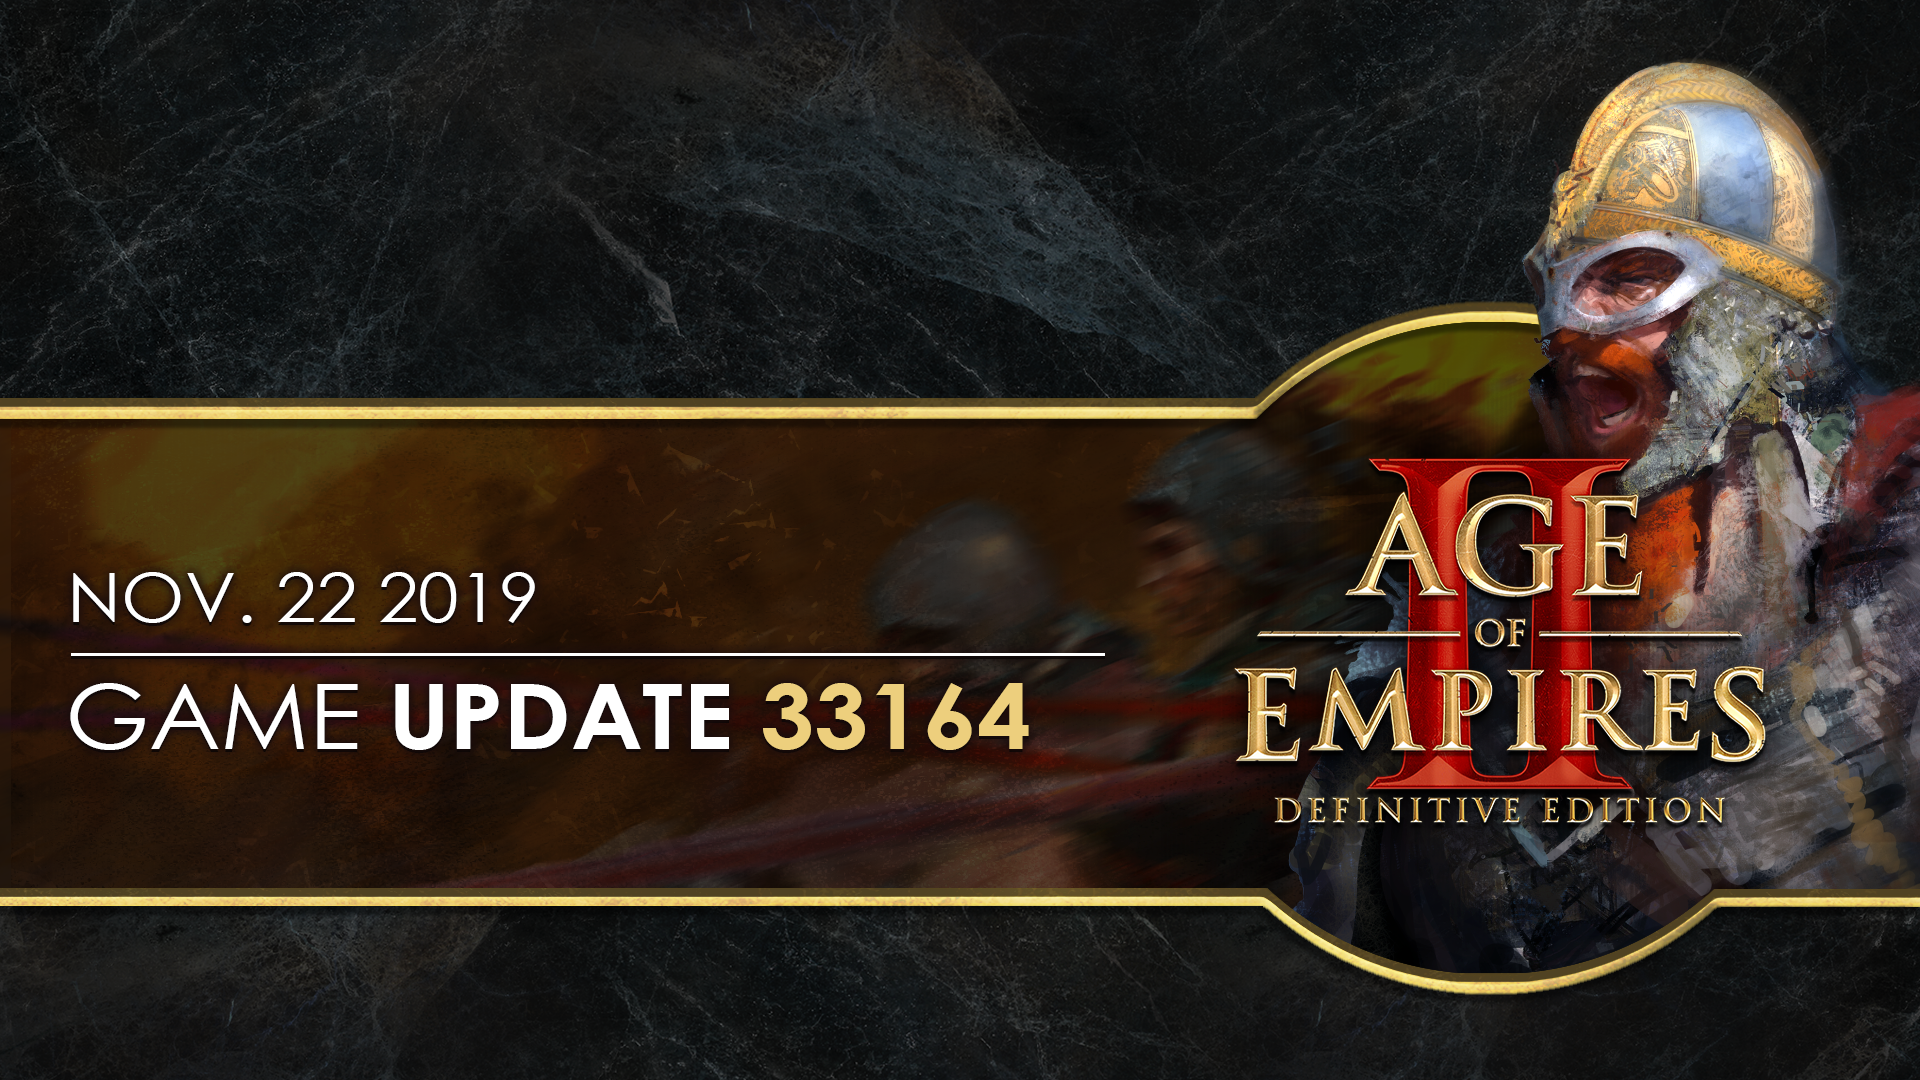 'Age of Empires II: Definitive Edition — Update 33164' thumbnail